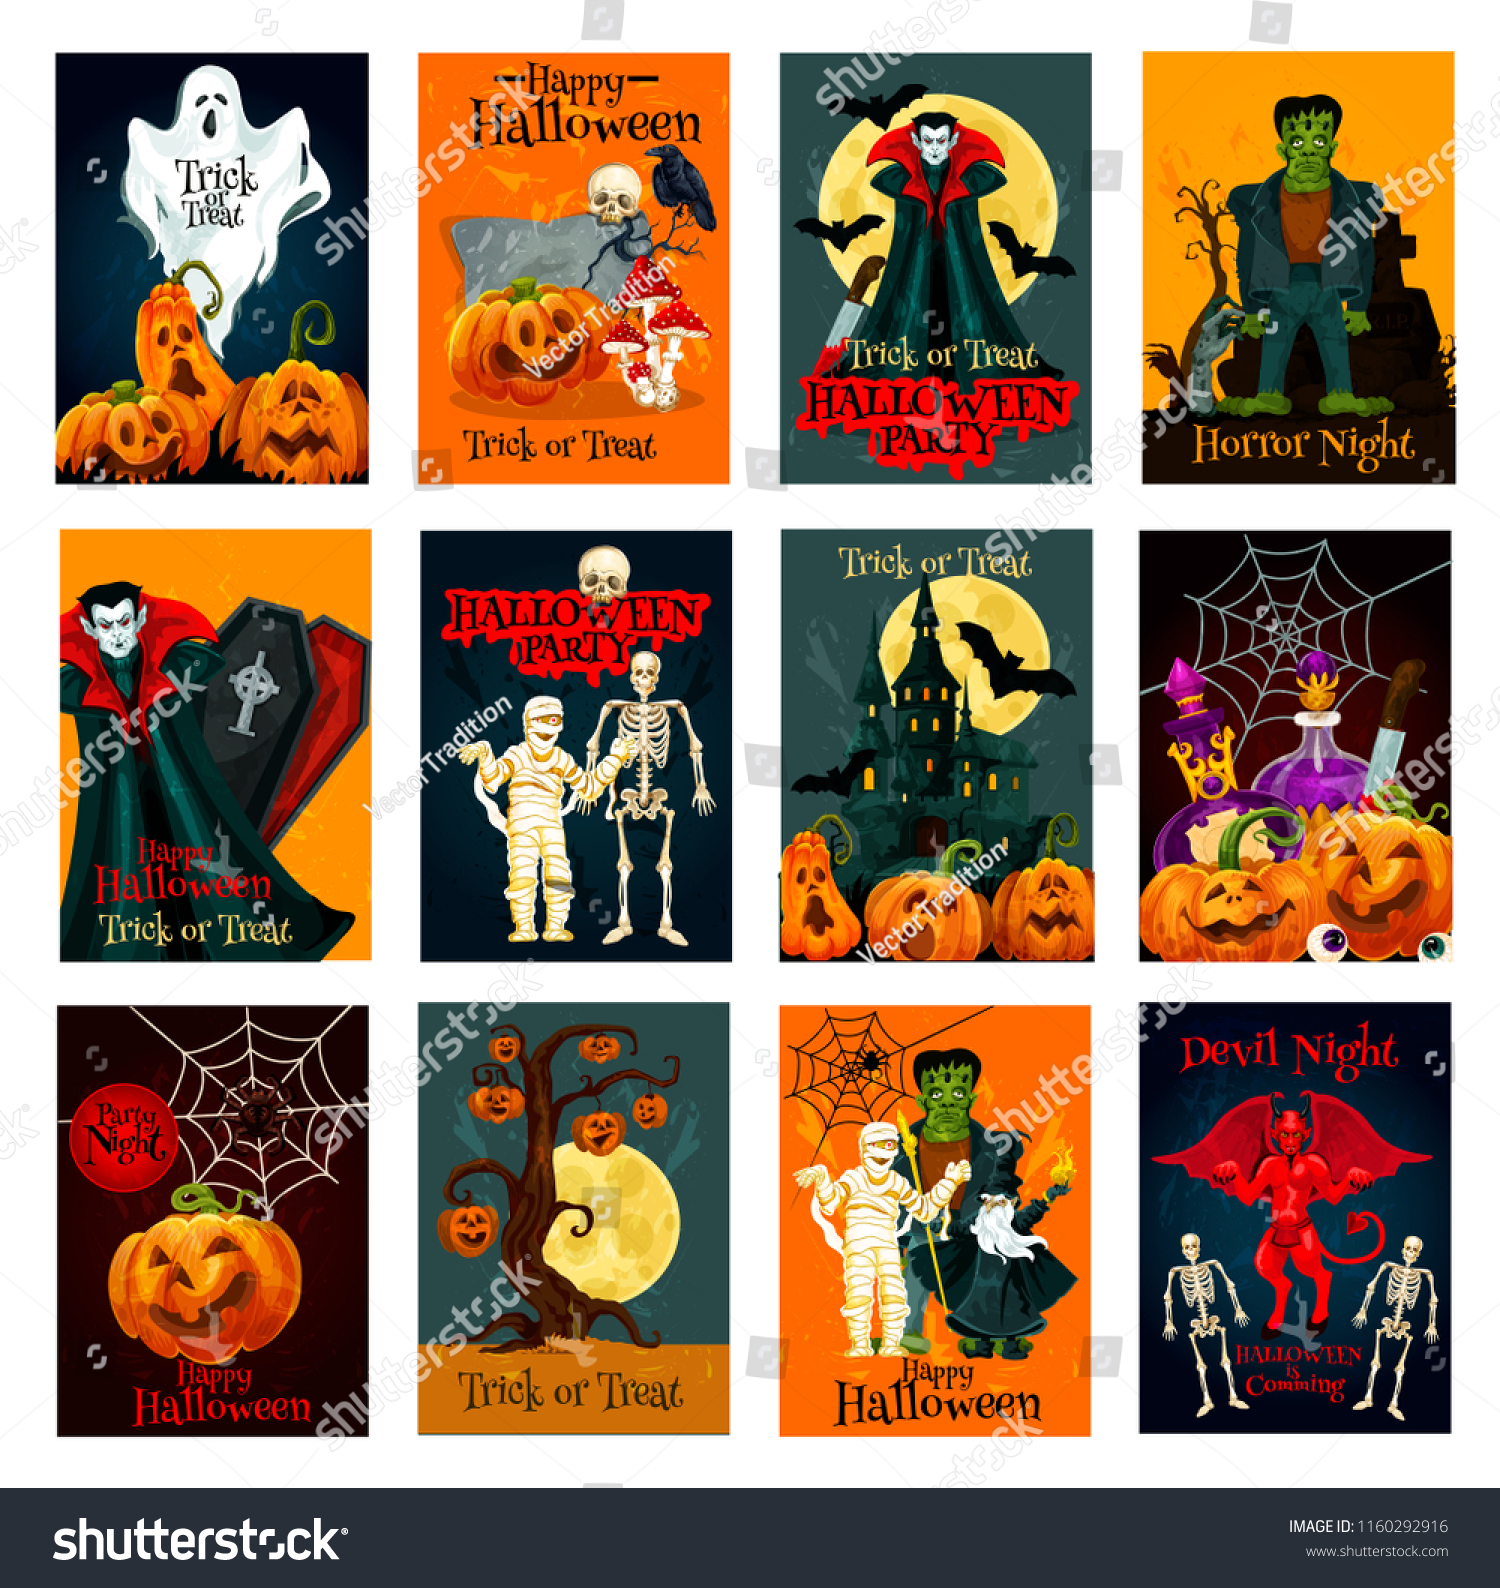 halloween holiday trick treat greeting card image vectorielle de